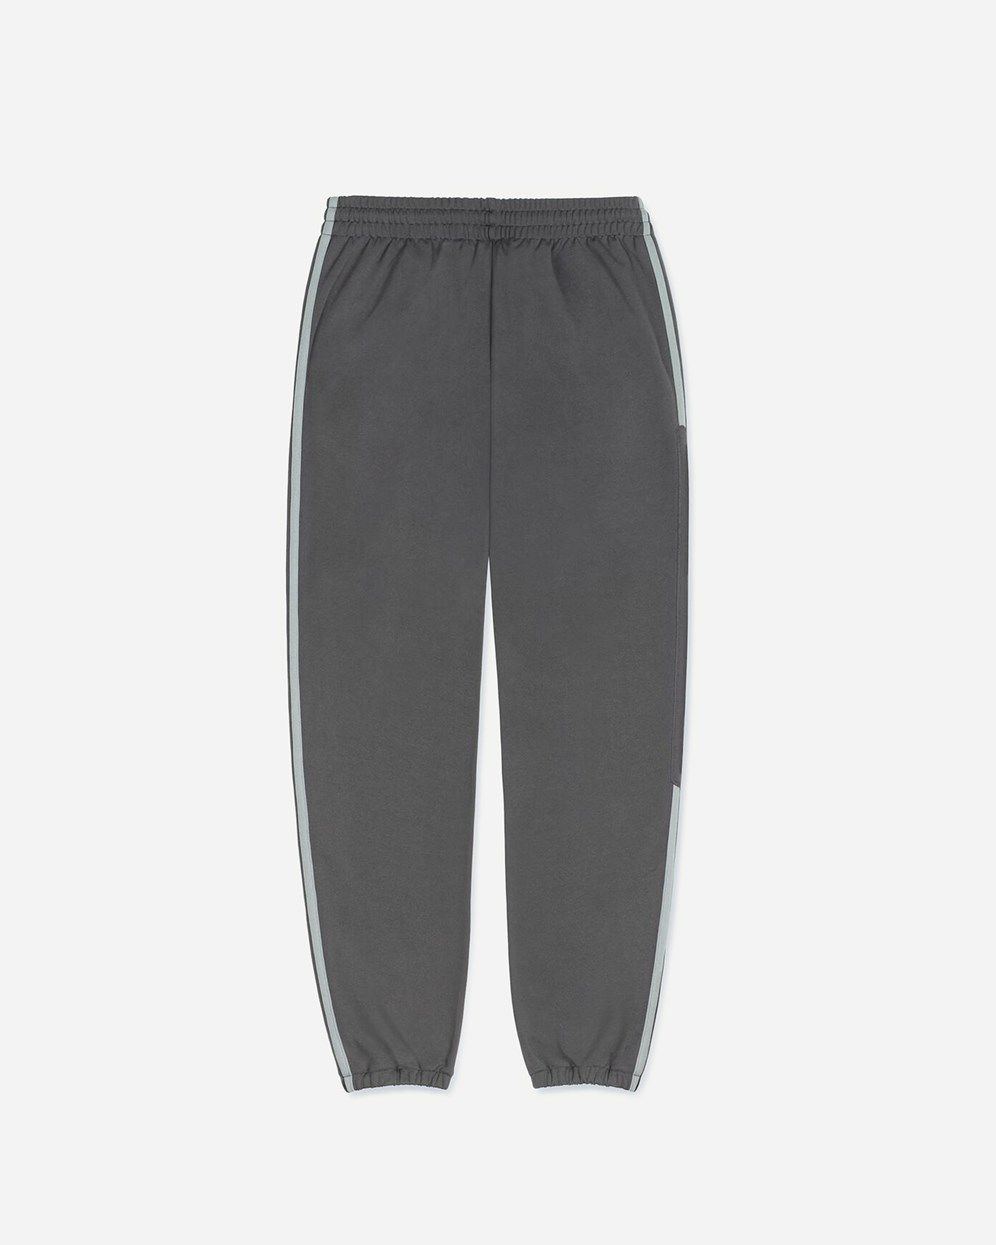 c56b8b4a Adidas Originals Yeezy Calabasas Track Pants DY0567 | Ink/Wolves | Clothing  - Naked